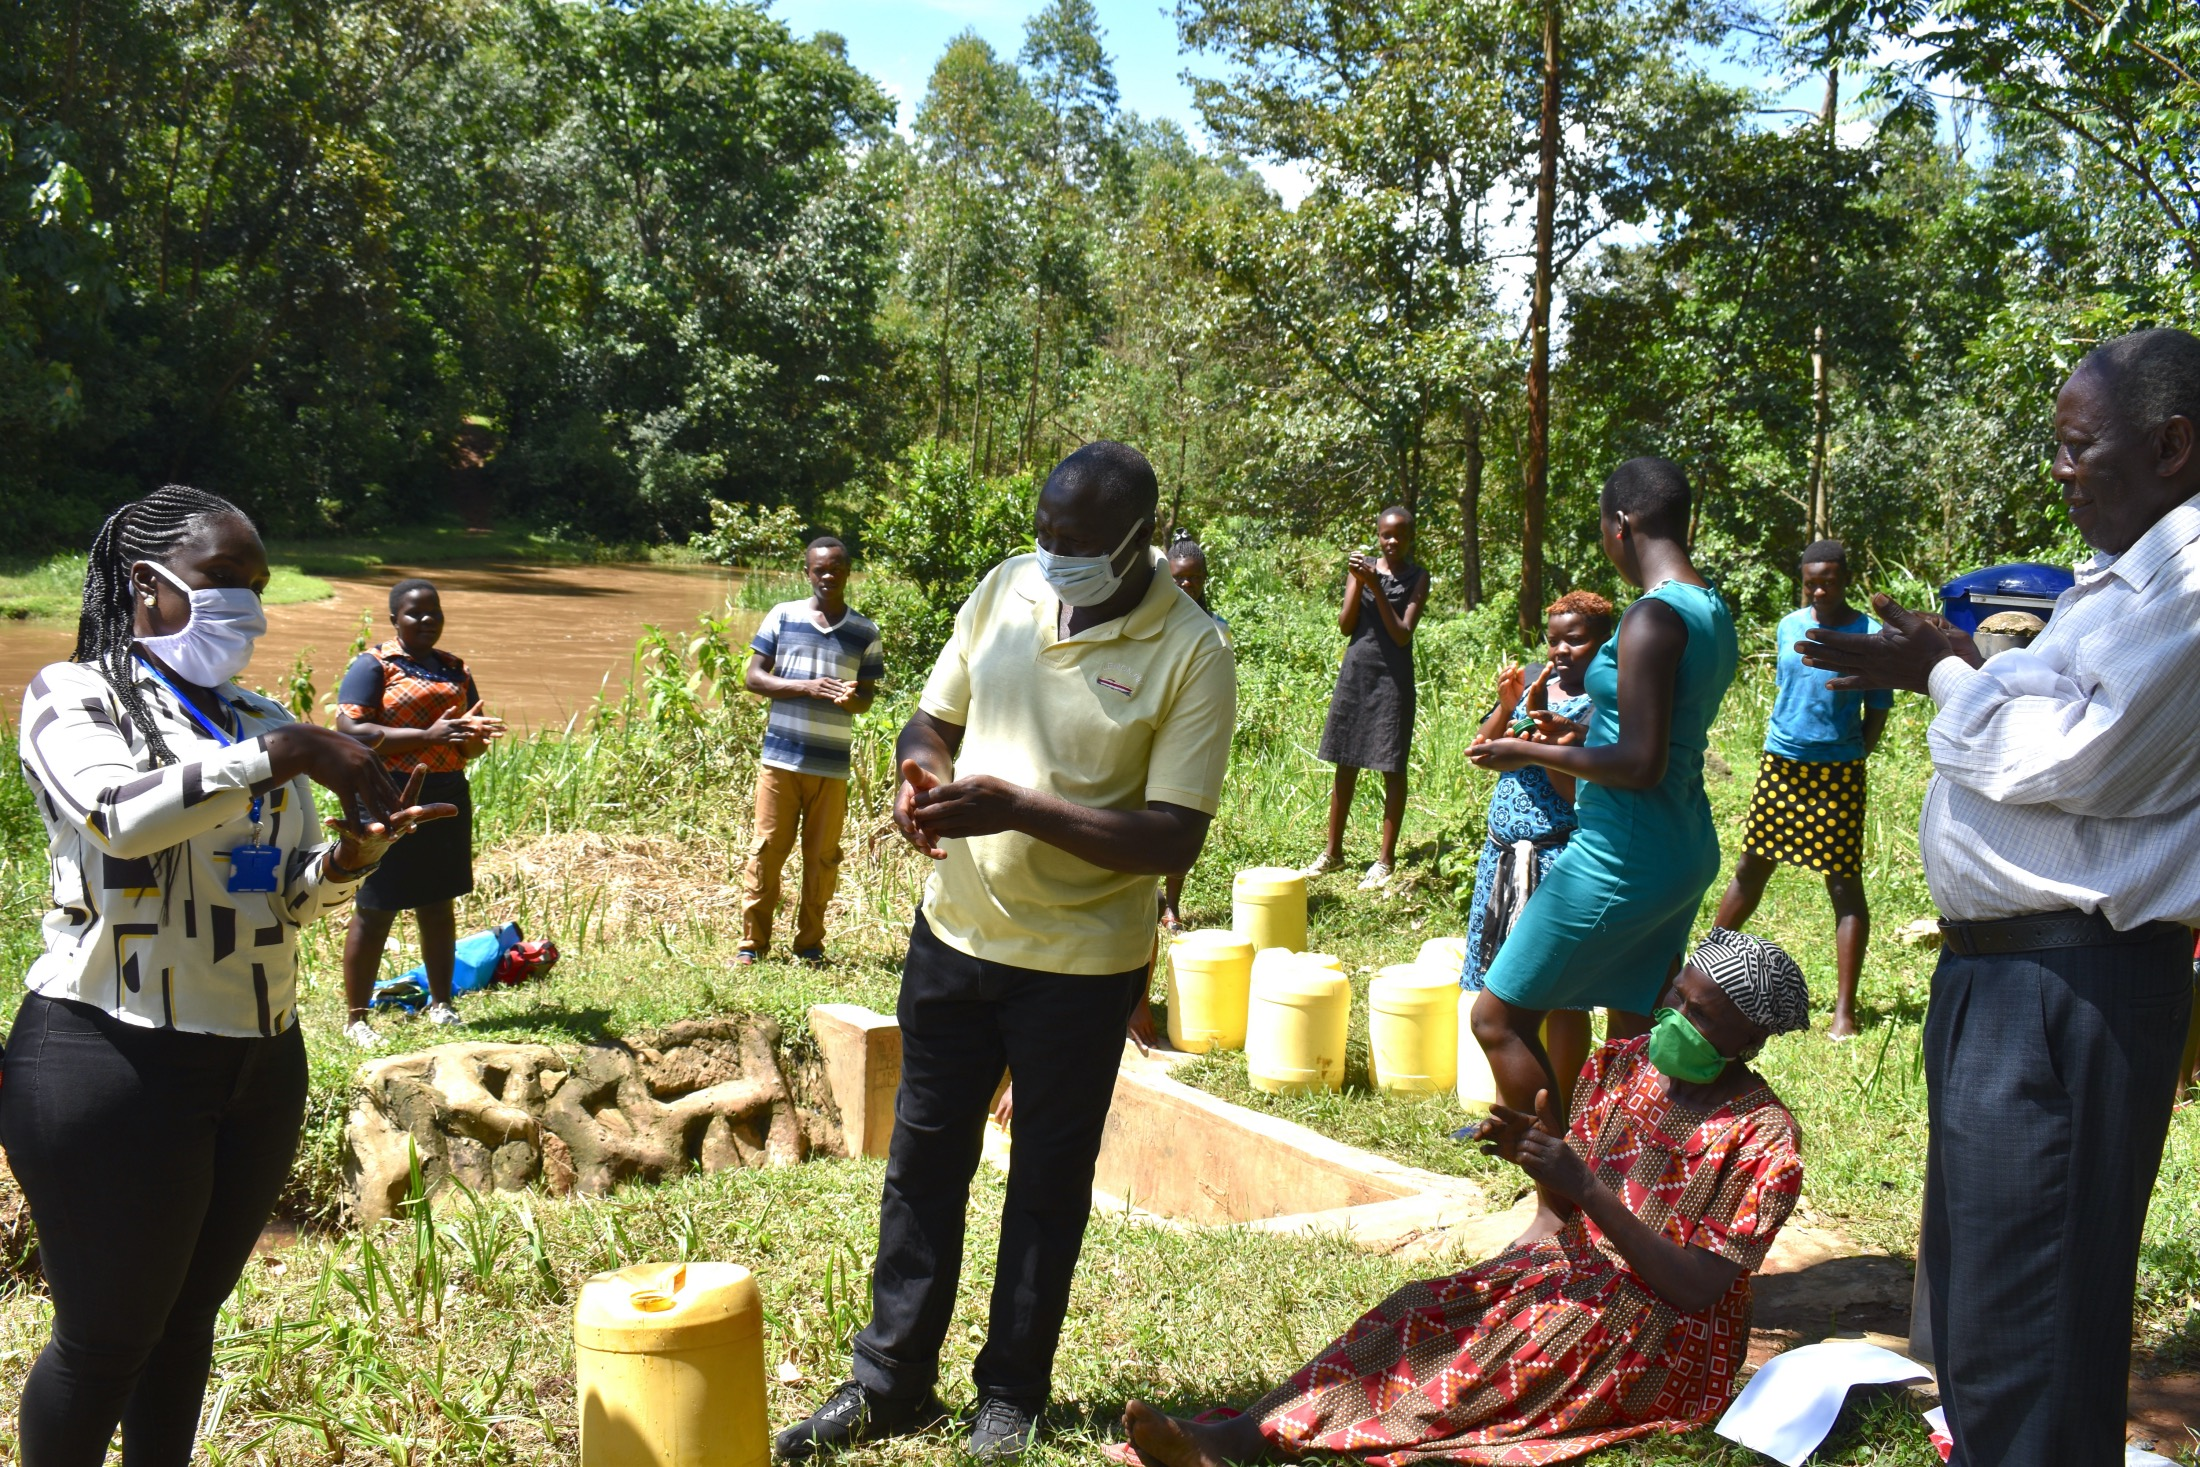 The Water Project : 6-covid19-kenya18096-trainer-alulu-leading-the-handwashing-exercise